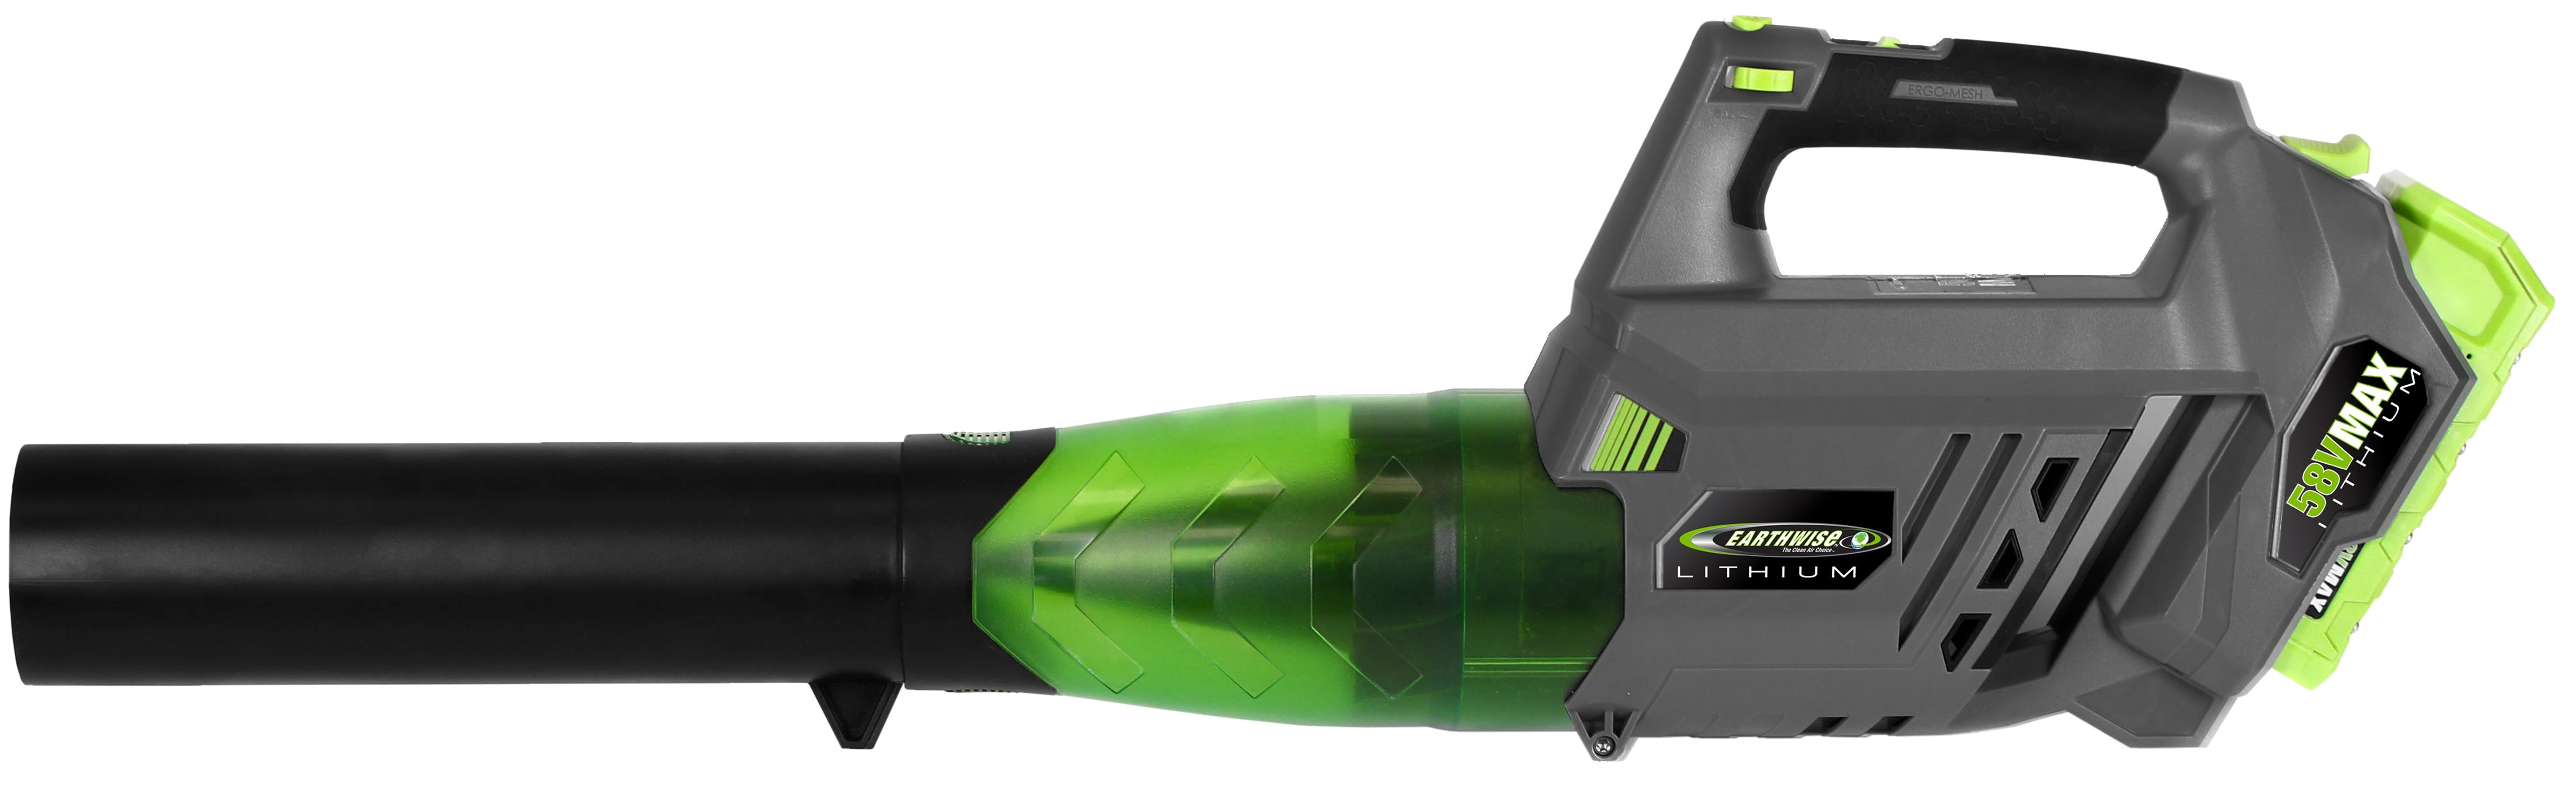 Earthwise Power Tools by ALM 155 MPH 58V 2Ah Lithium Blower